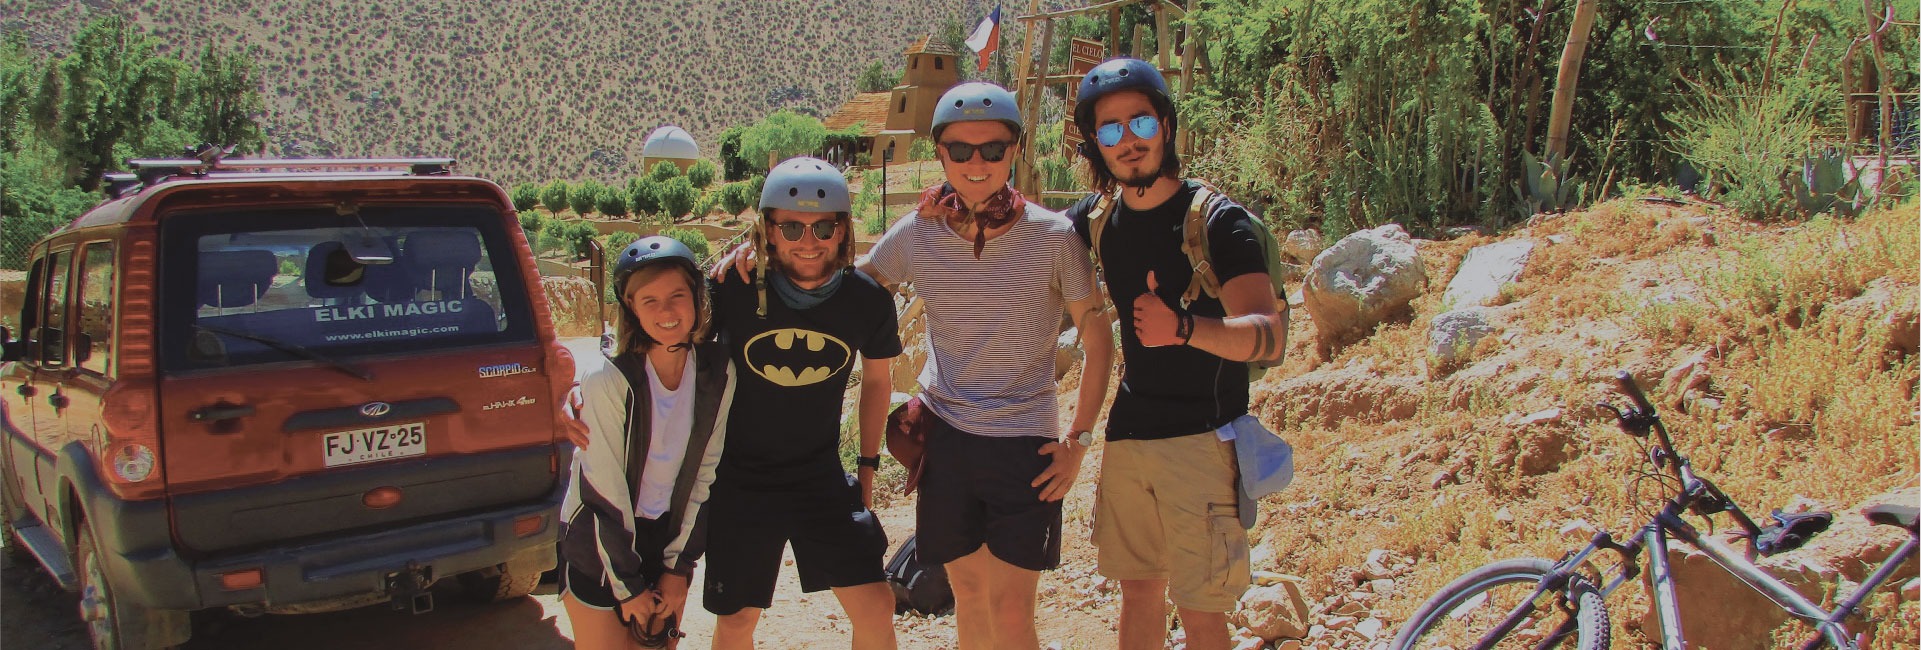 Discover the Elqui Valley in a fun and eco-friendly way